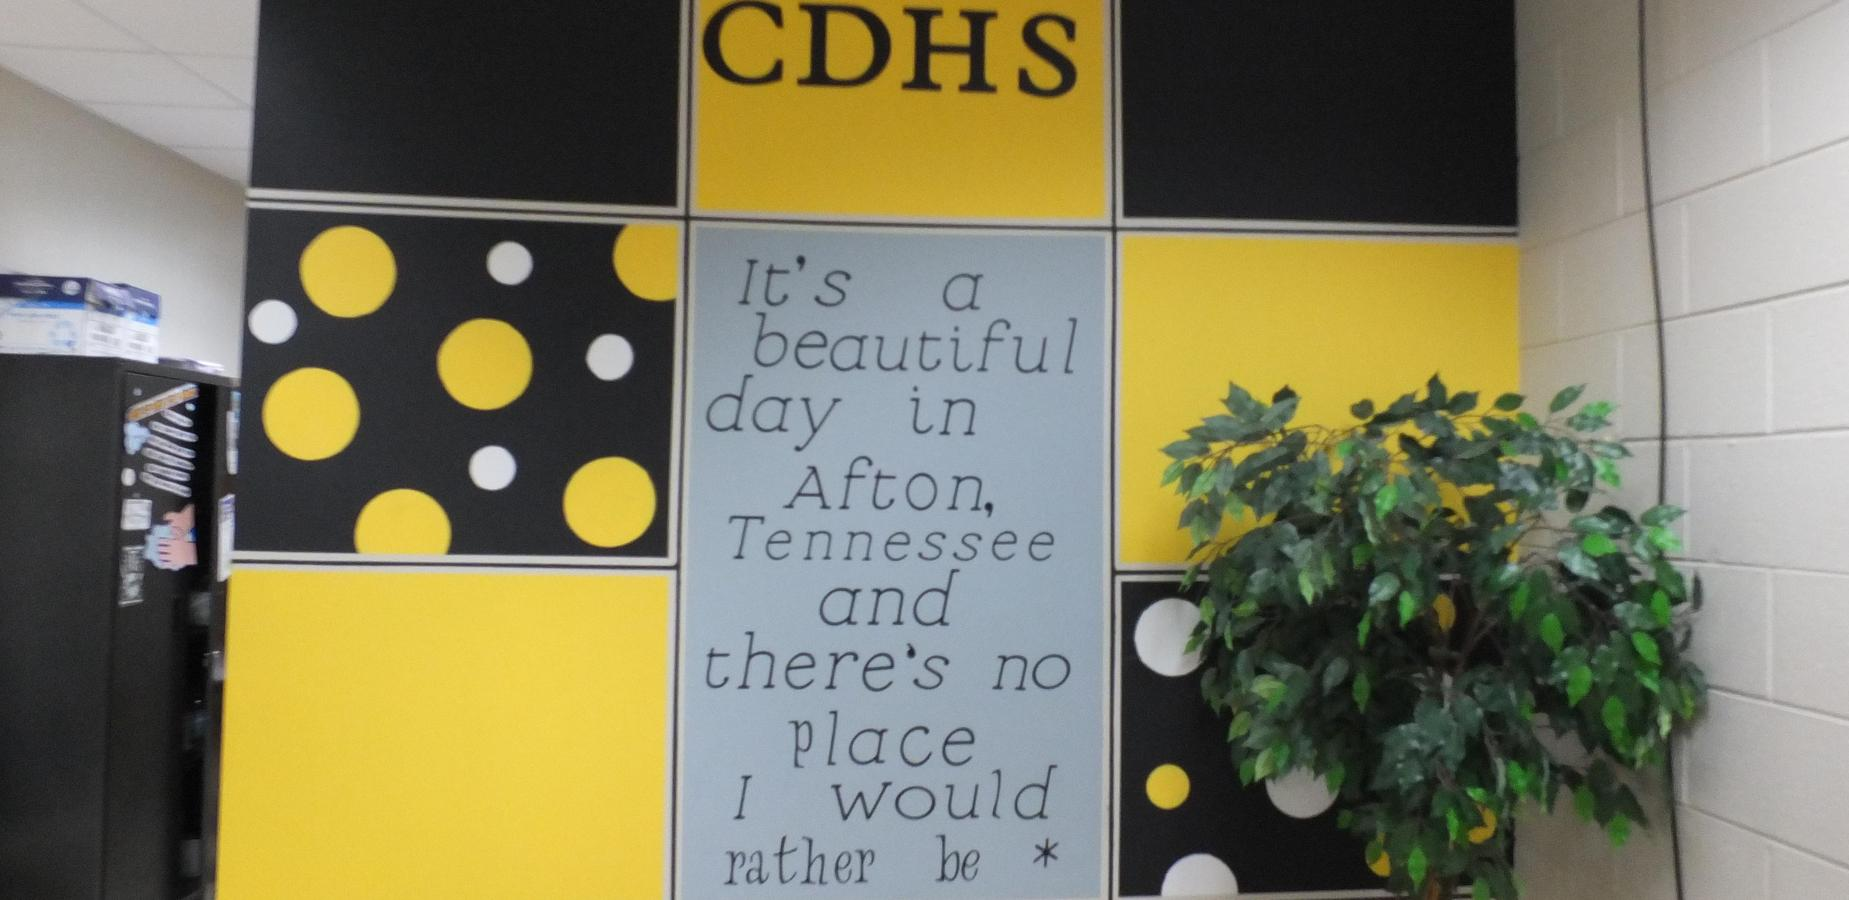 CDHS: It's a beautiful day in Afton, TN, and there's no place I would rather be.